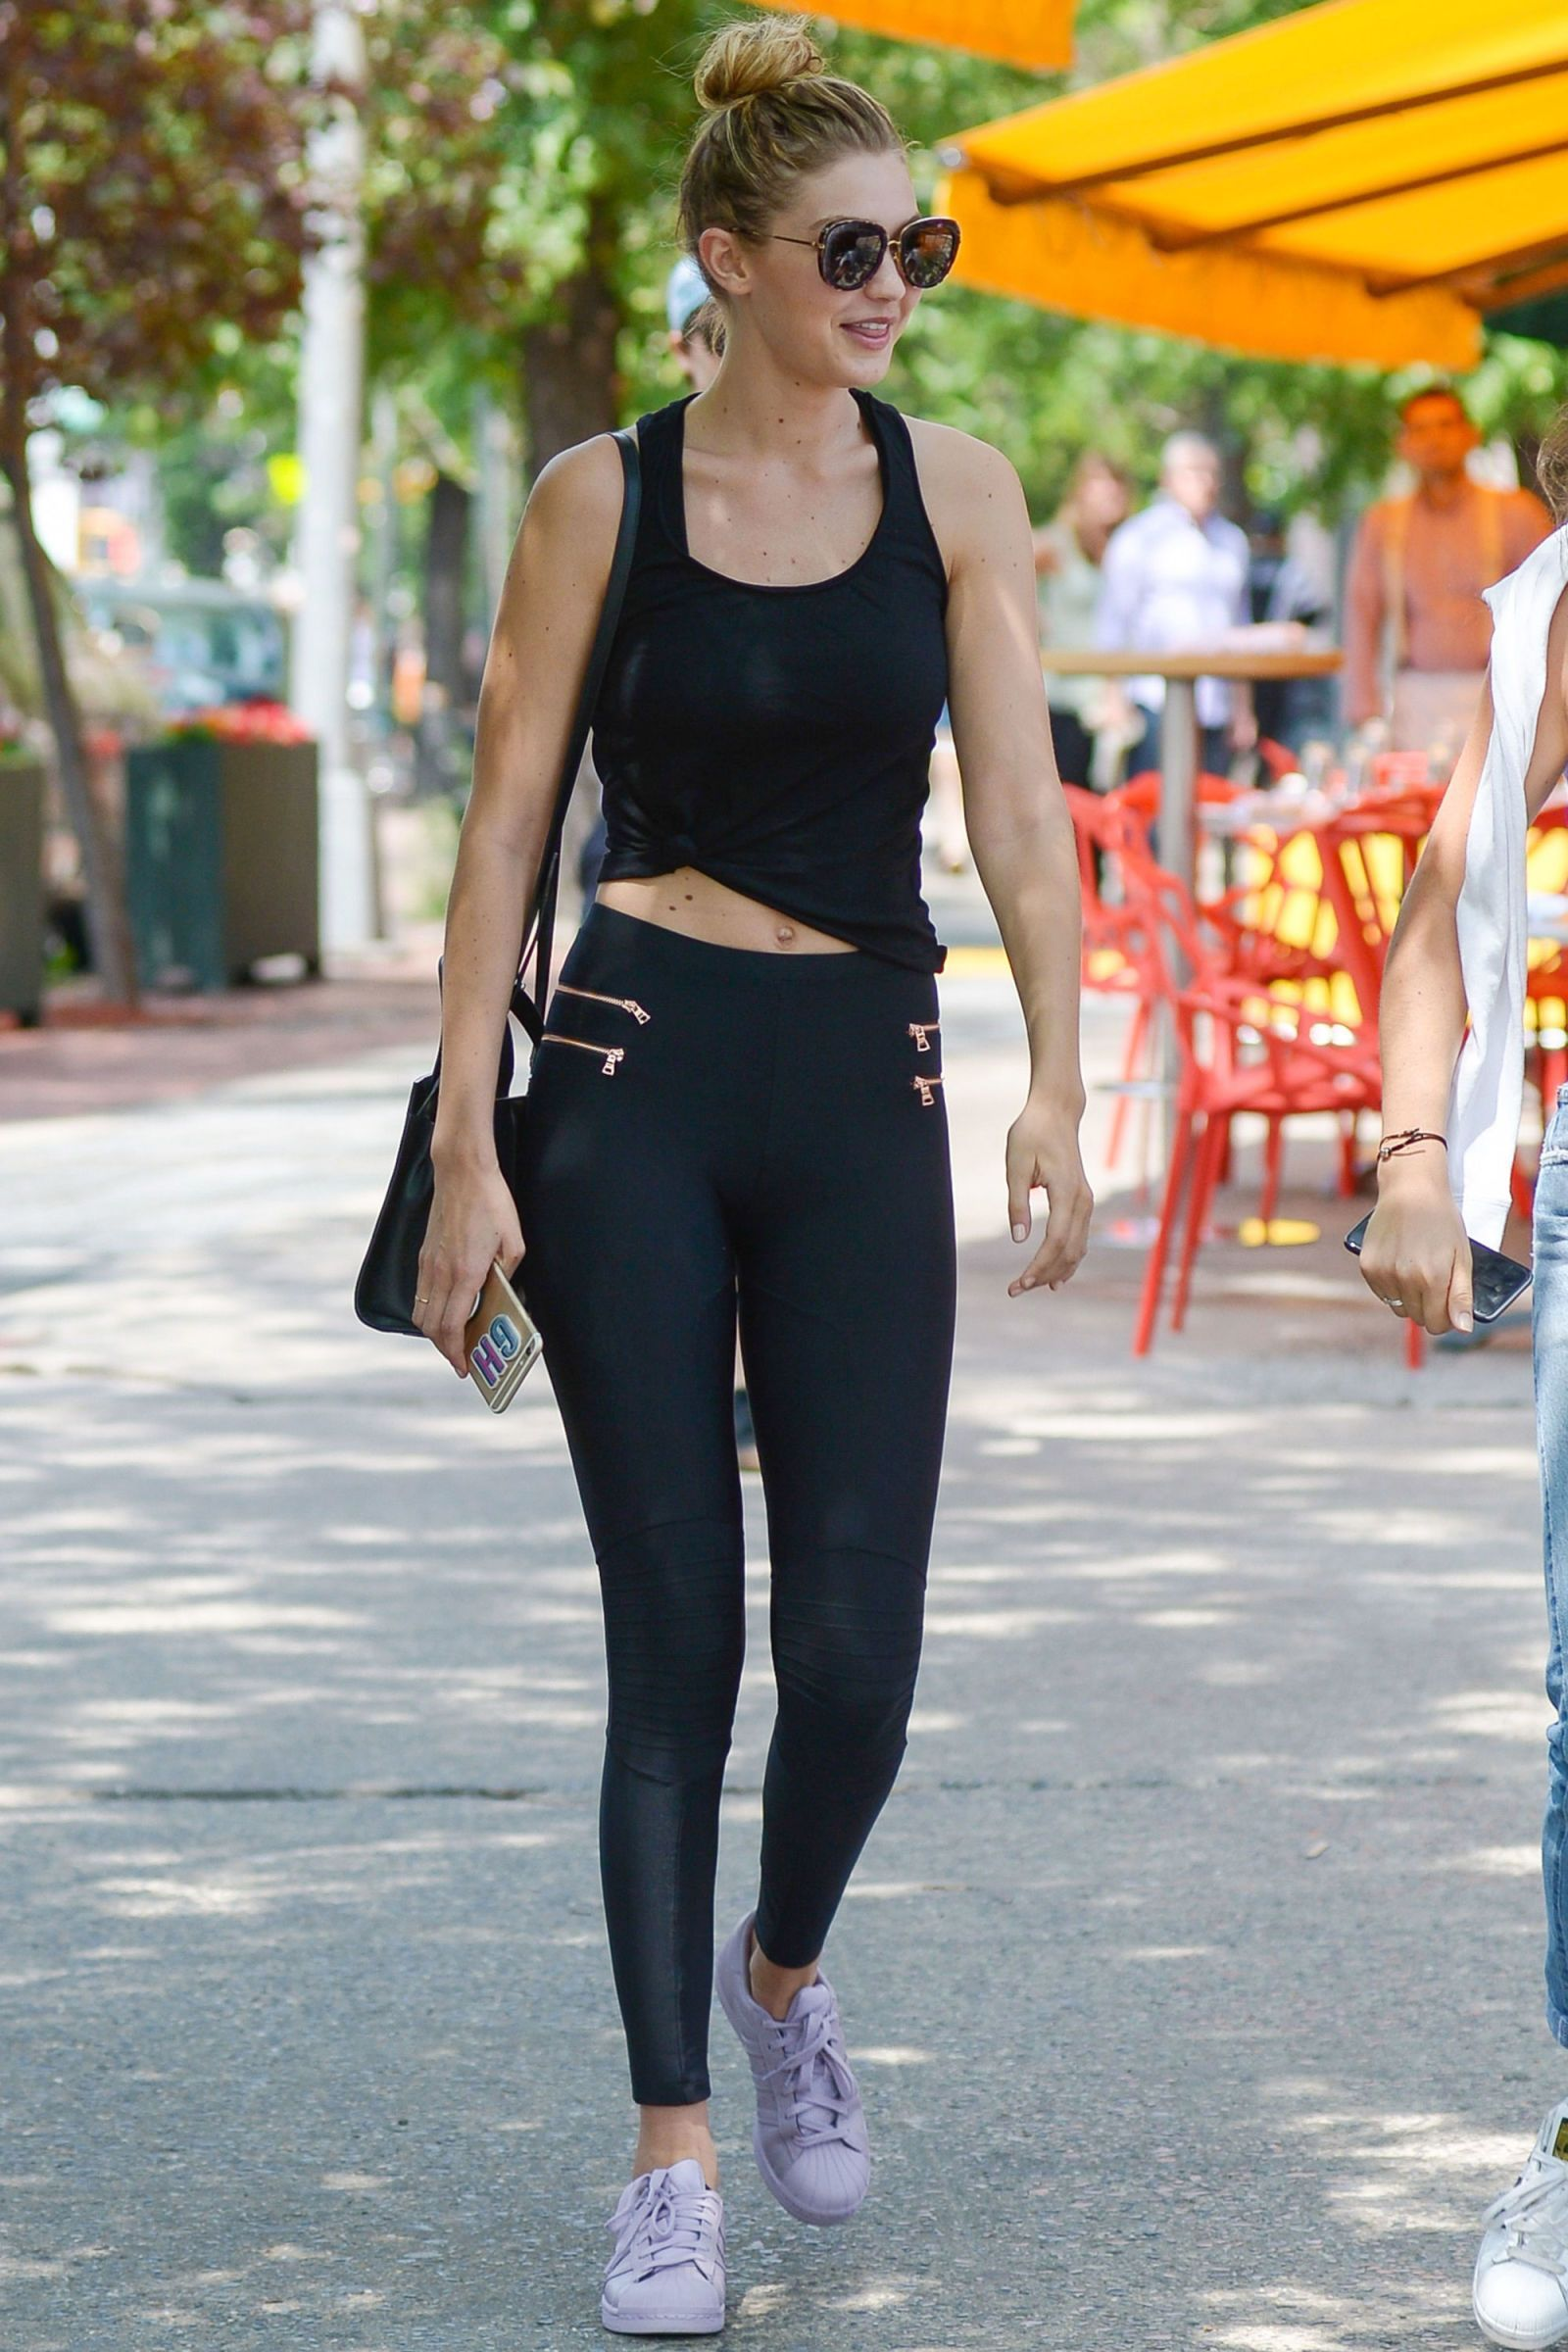 29e61a4178 15 Times Kendall Jenner and Gigi Hadid Looked Flawless in Gym Clothes -  Cosmopolitan.com